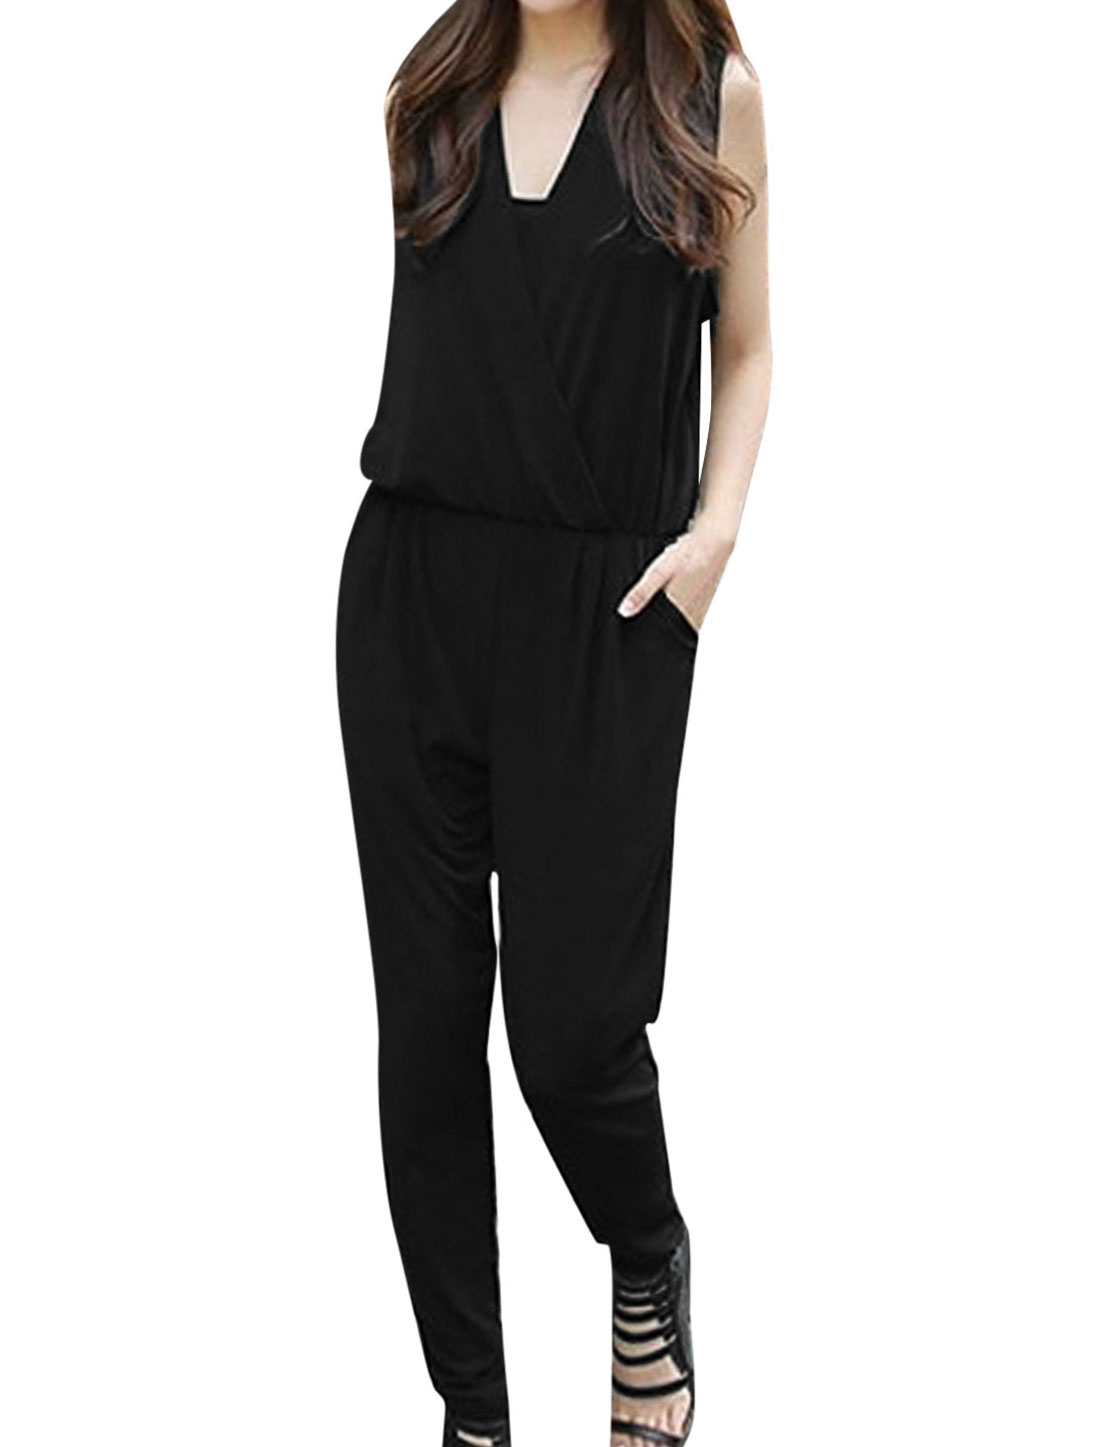 Lady Deep V Neck Elastic Waist Double Slant Pockets Front Jumpsuit Black S